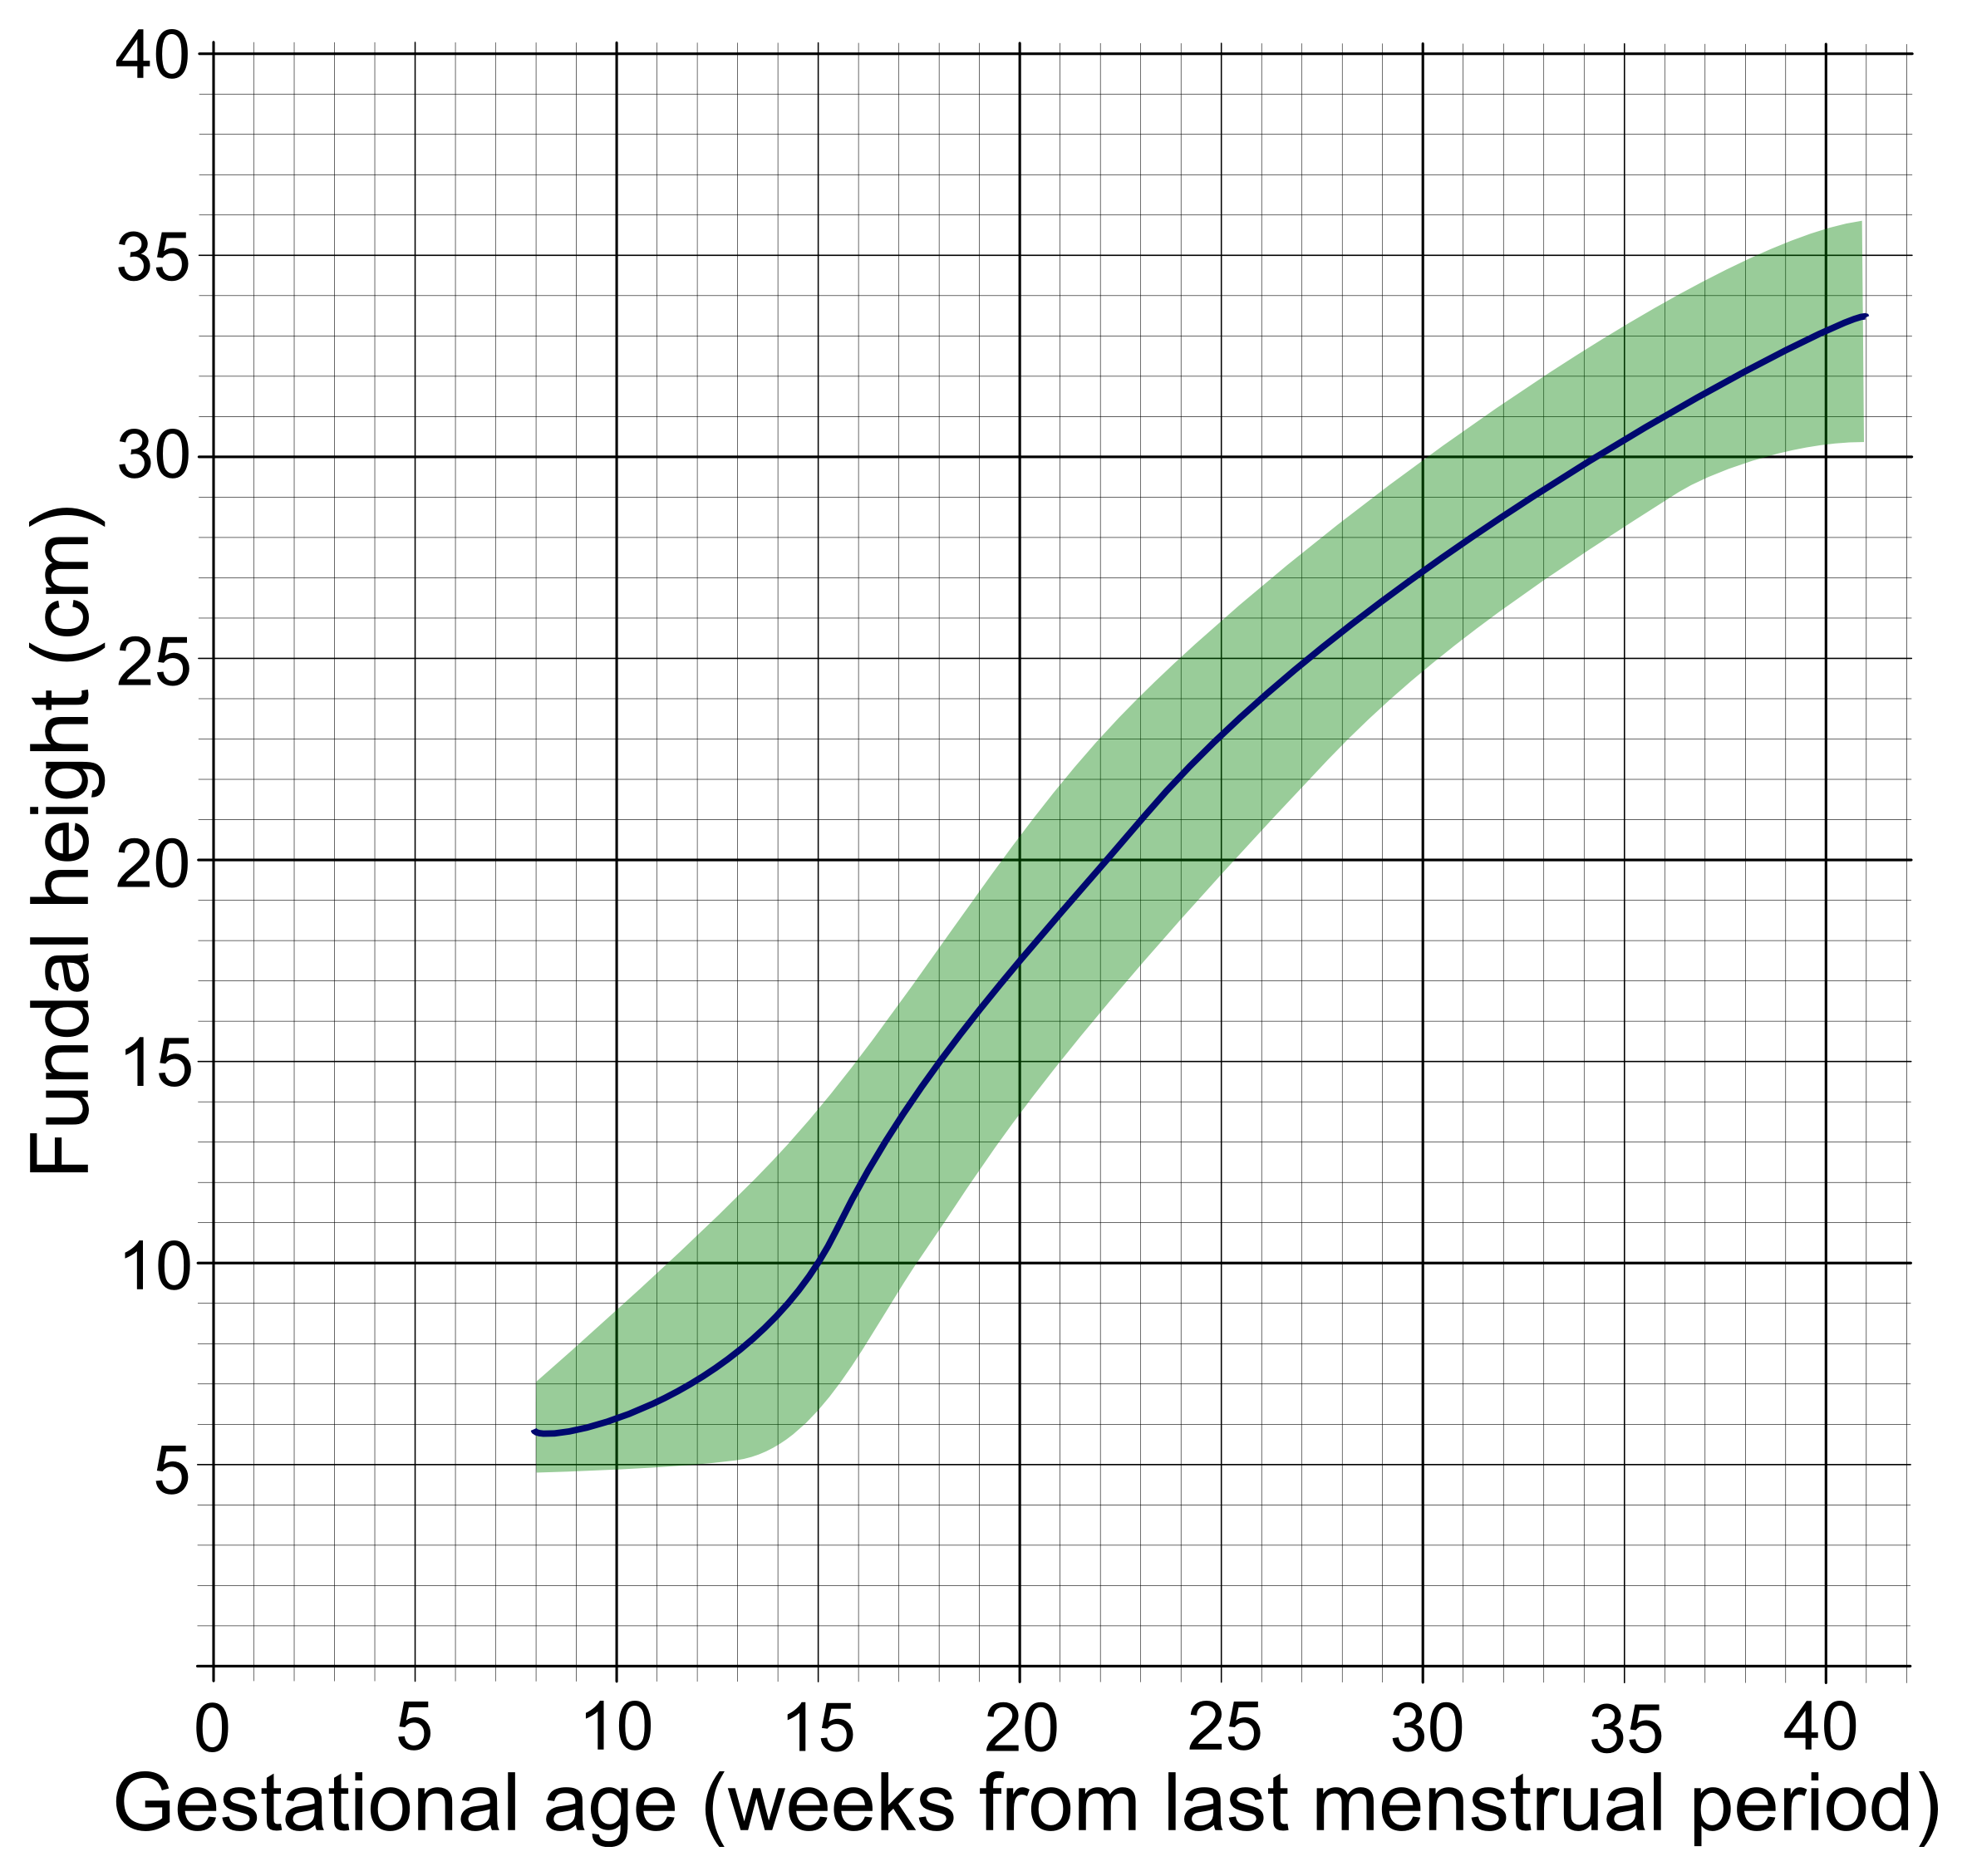 File:Gestational age and fundal height.png - Wikimedia Commons